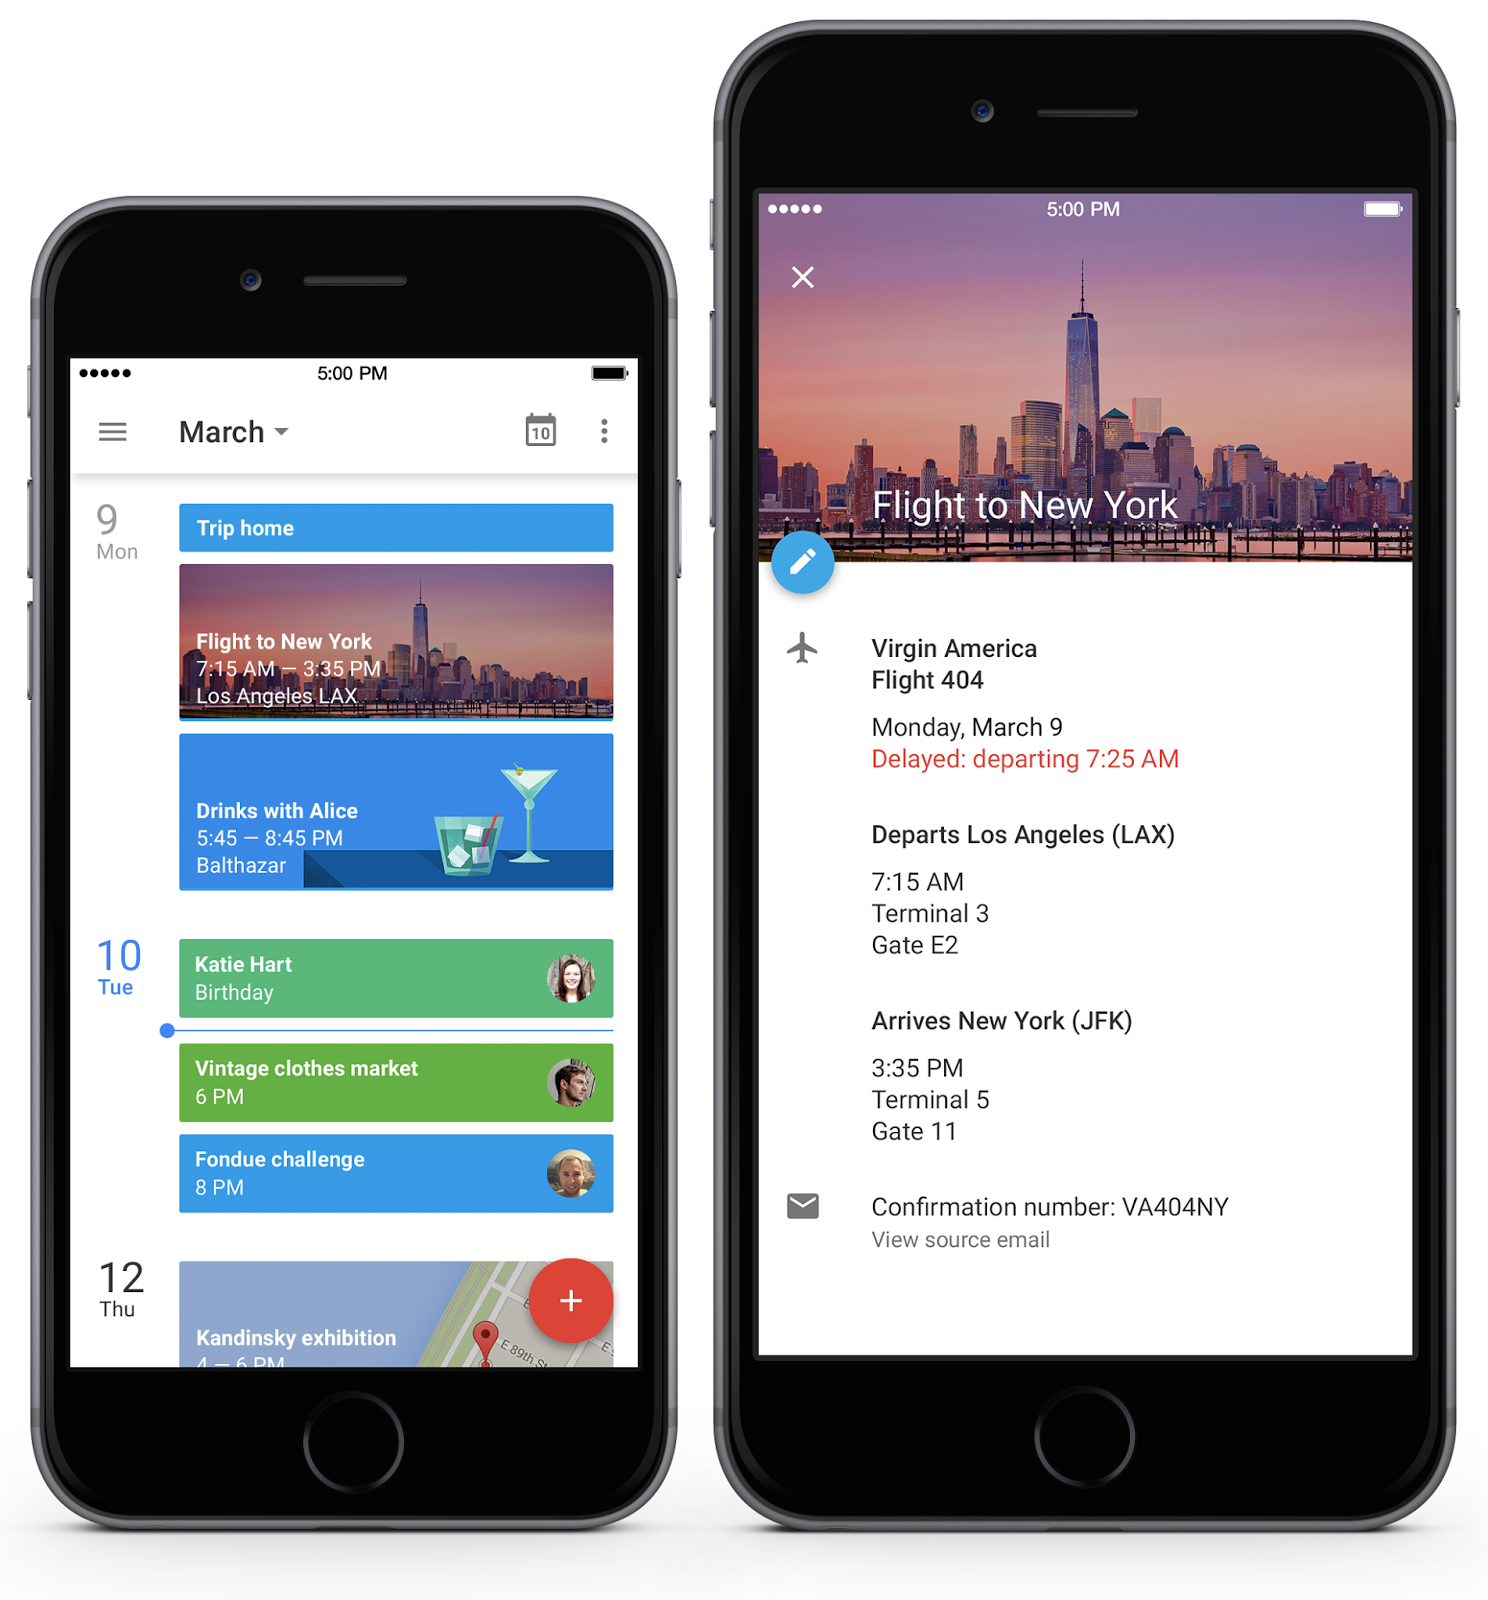 Calendar App Android : Official gmail google calendar for iphone it s